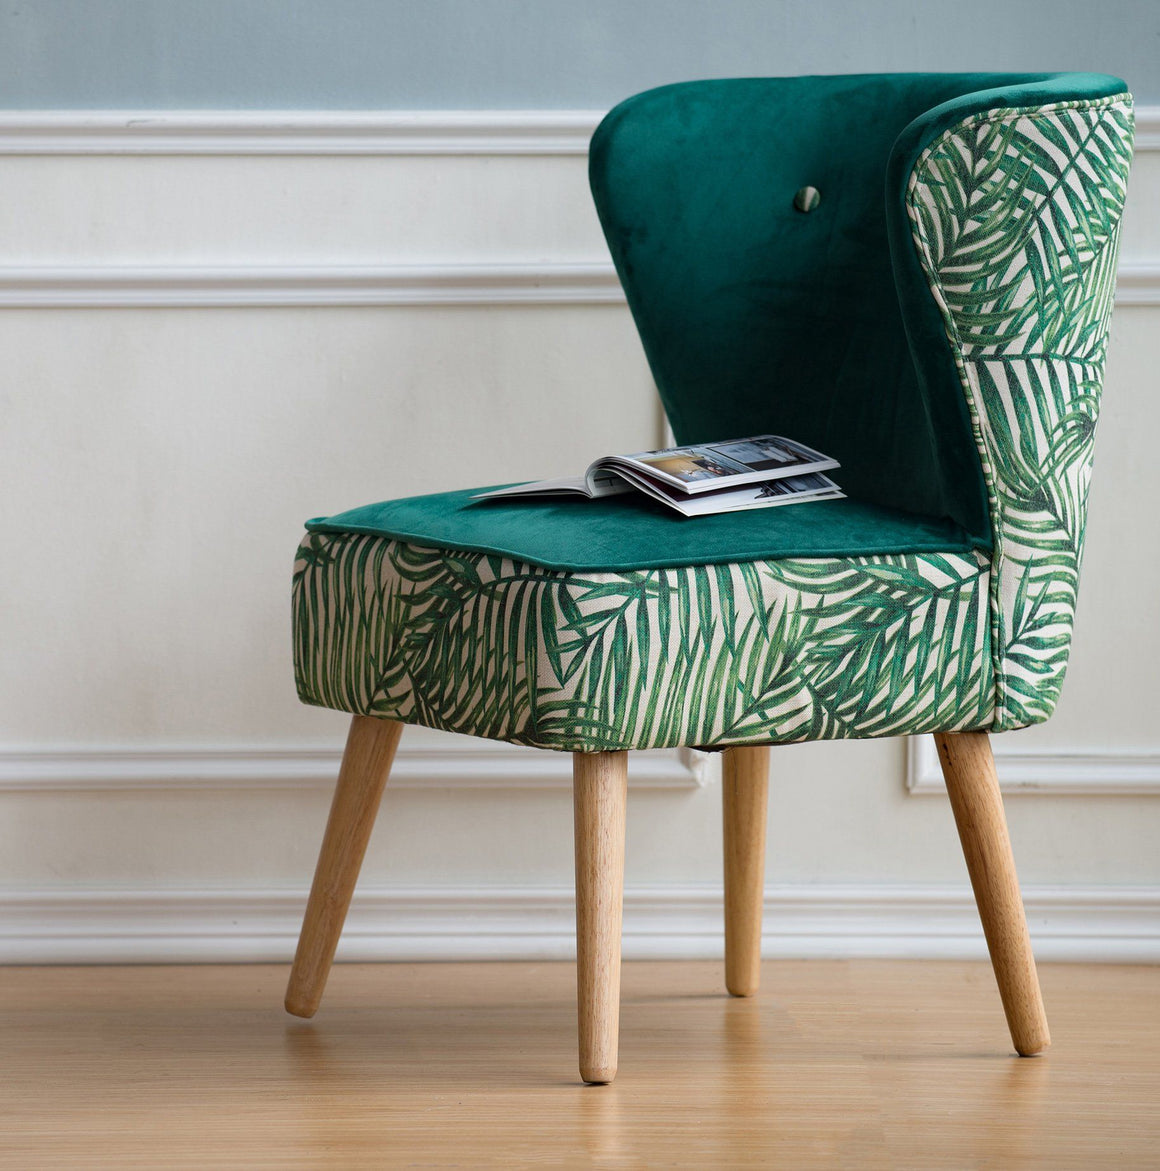 ARMLESS GREEN FERN CHAIR Philbee Interiors